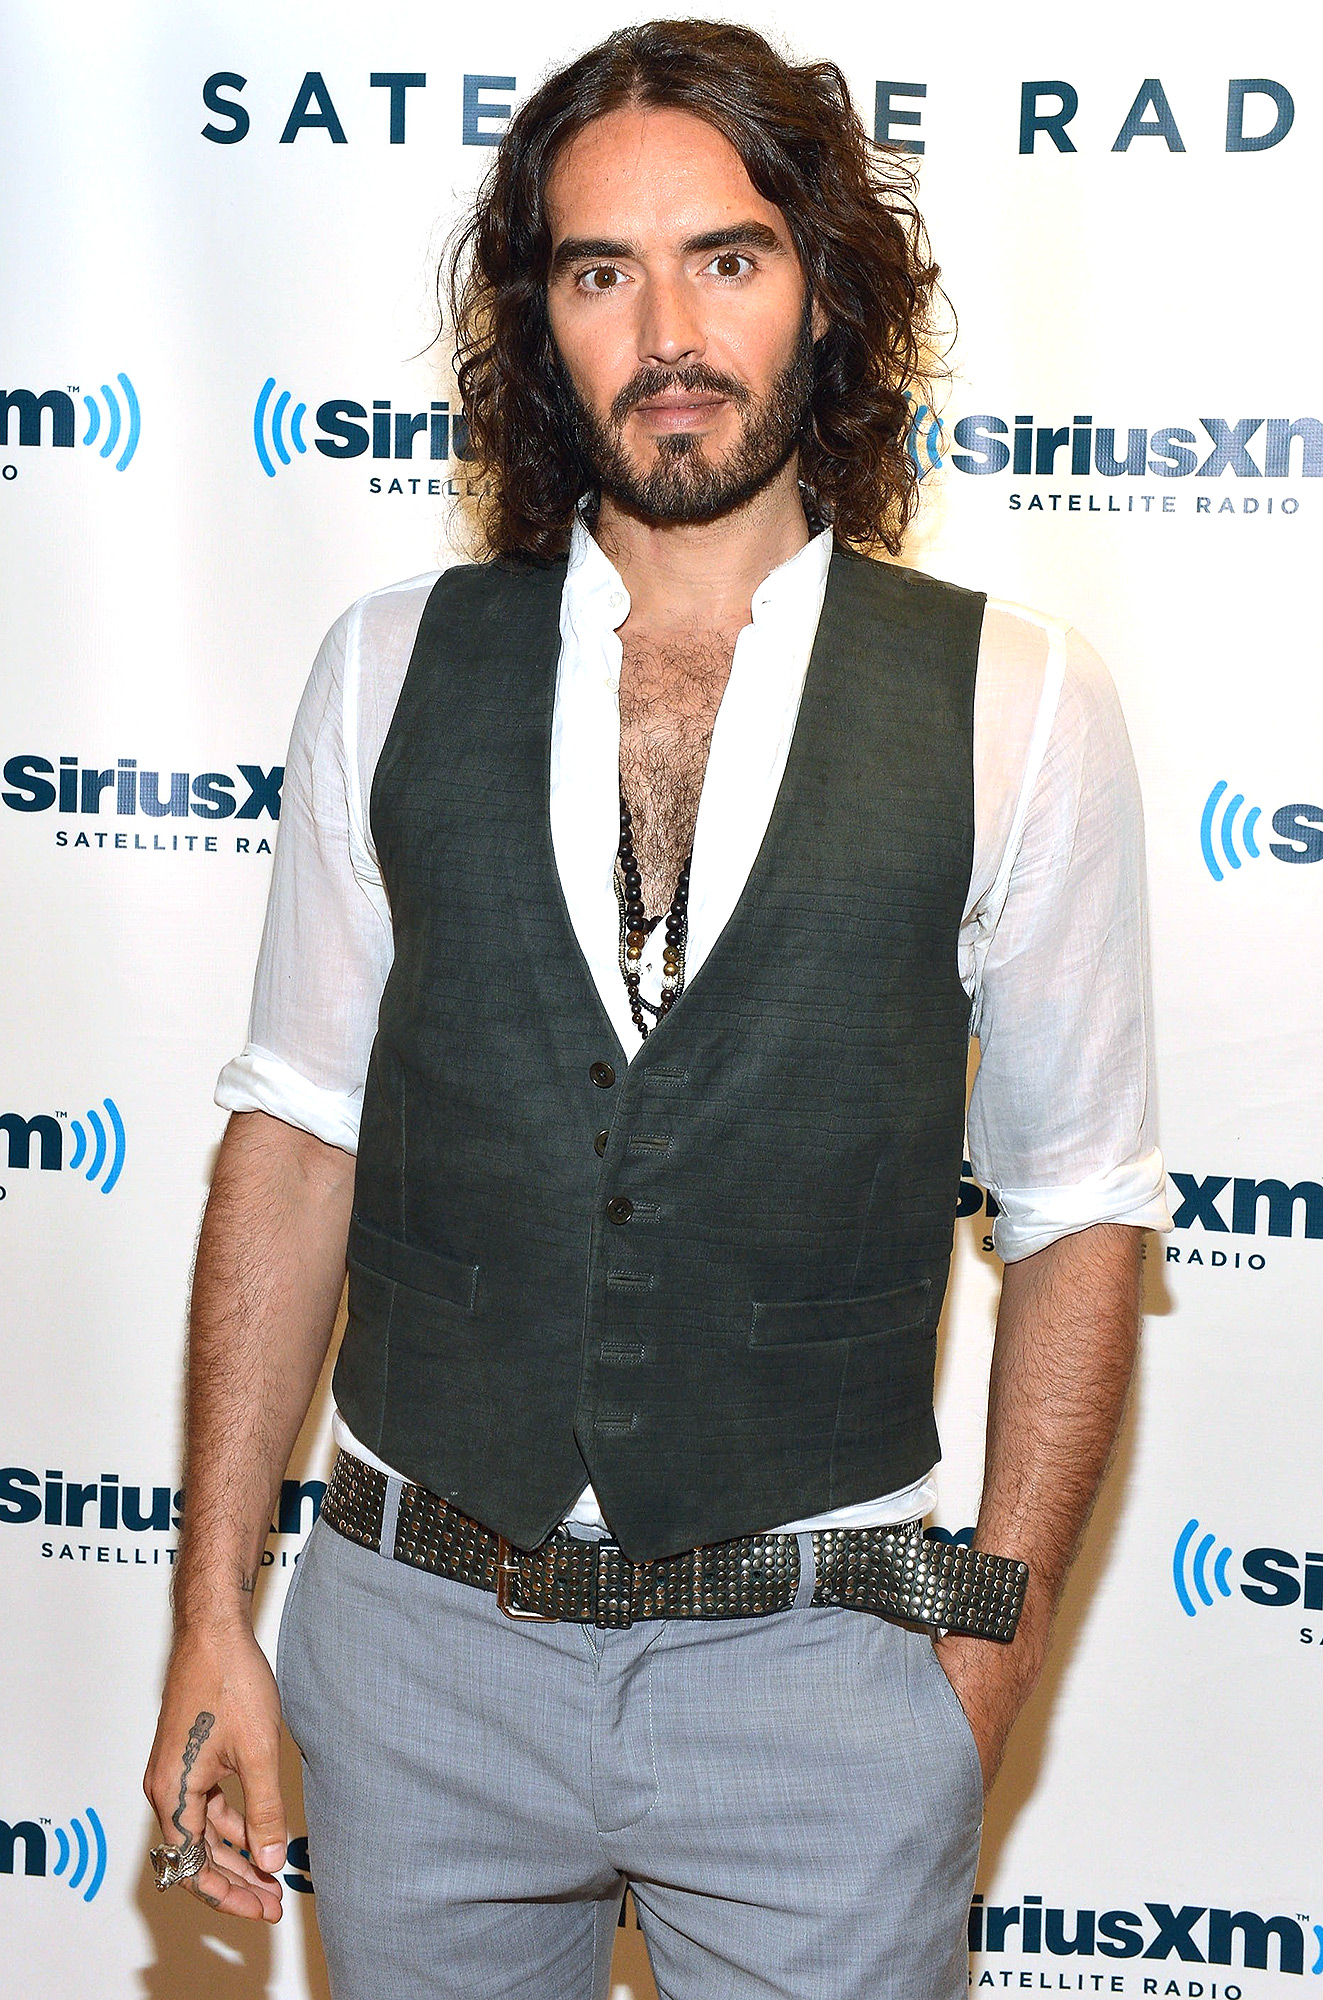 Celebrities Visit SiriusXM Studios - June 10, 2013